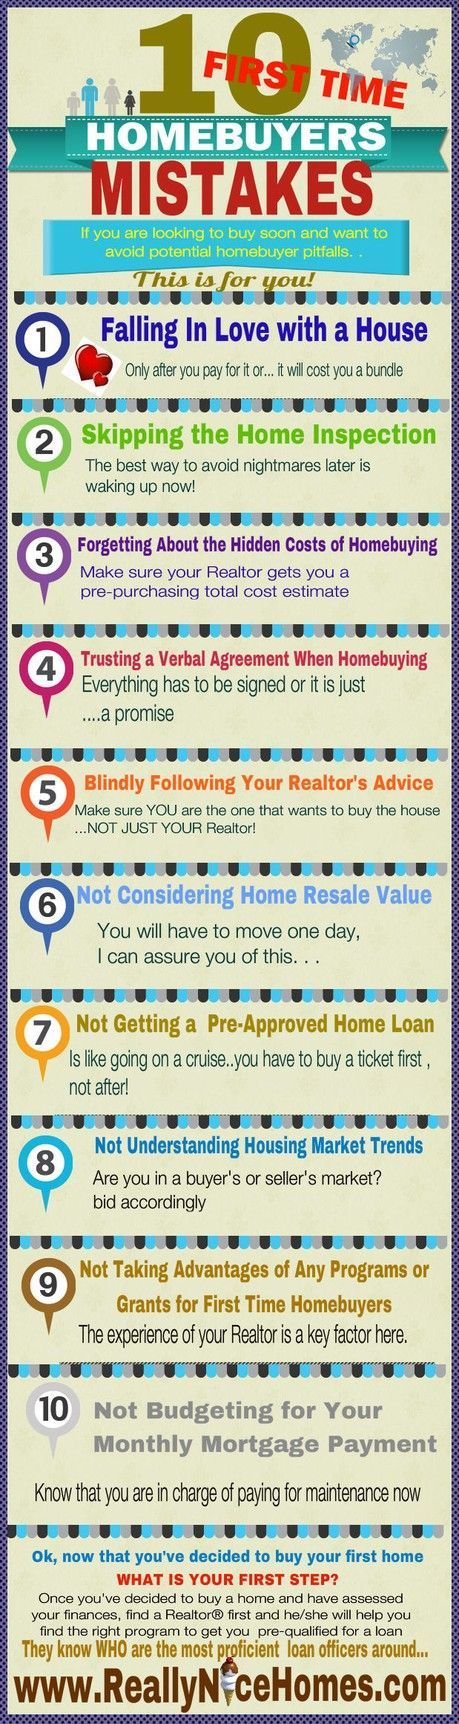 Delightful 10 HUGE FIRST TIME HOMEBUYER MISTAKES TO AVOID